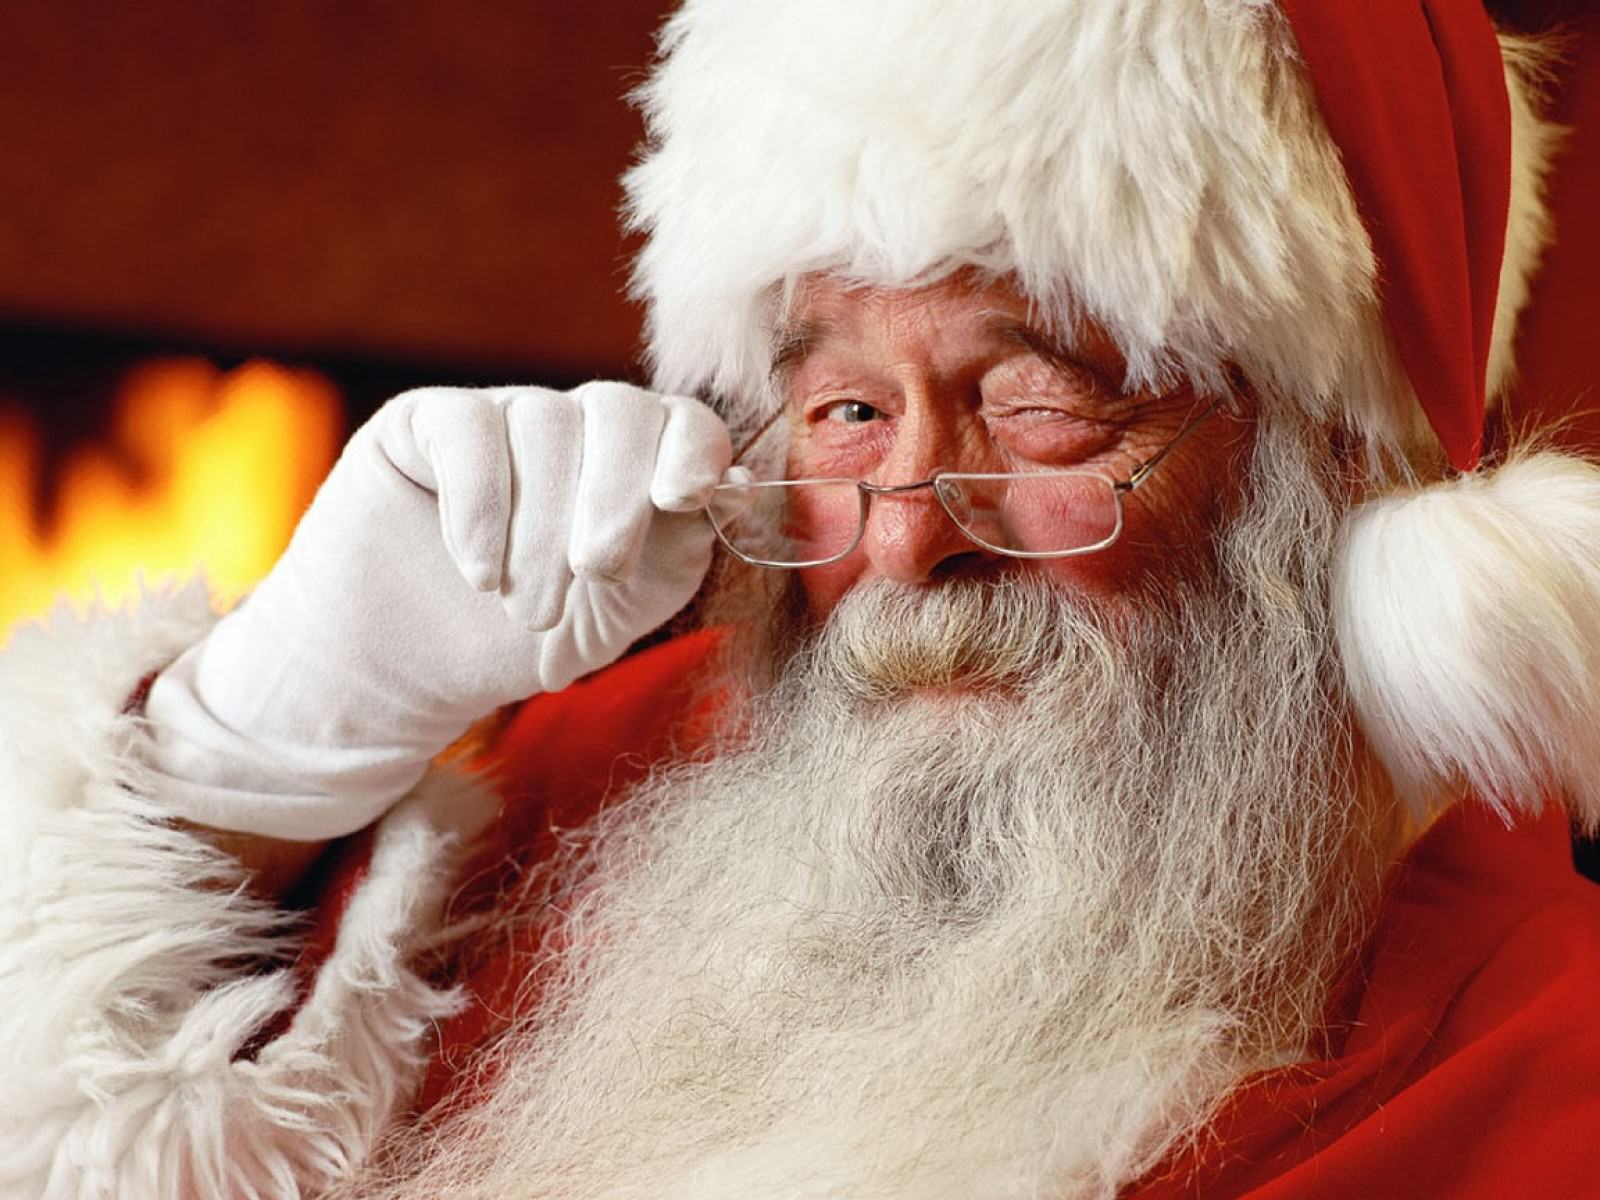 UNILAD santa claus33 Creepy Santa Charged With Child Sex Crimes